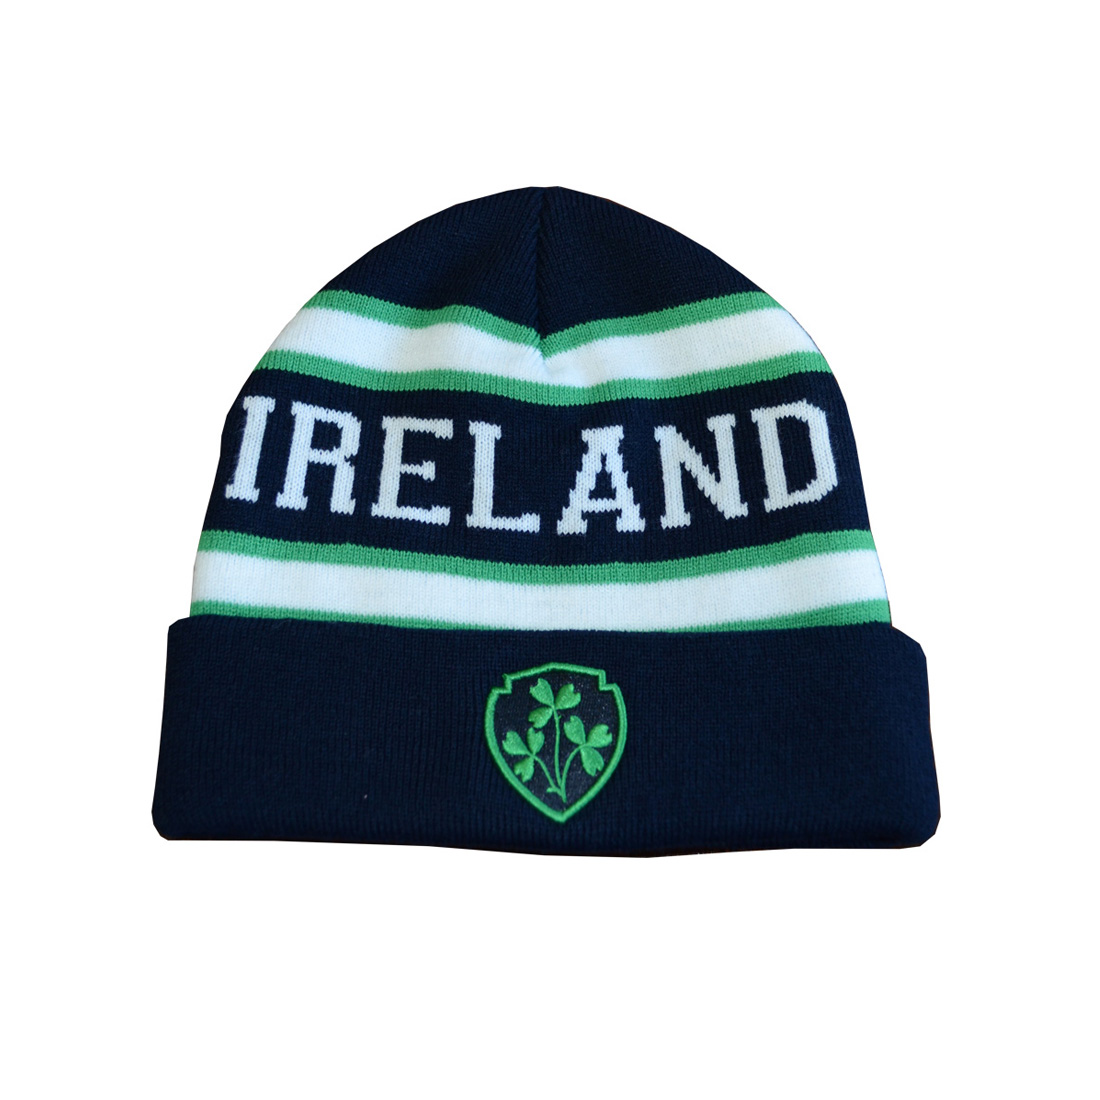 Navy Green Ireland Knitted Kids Hat  54d62881ad5e